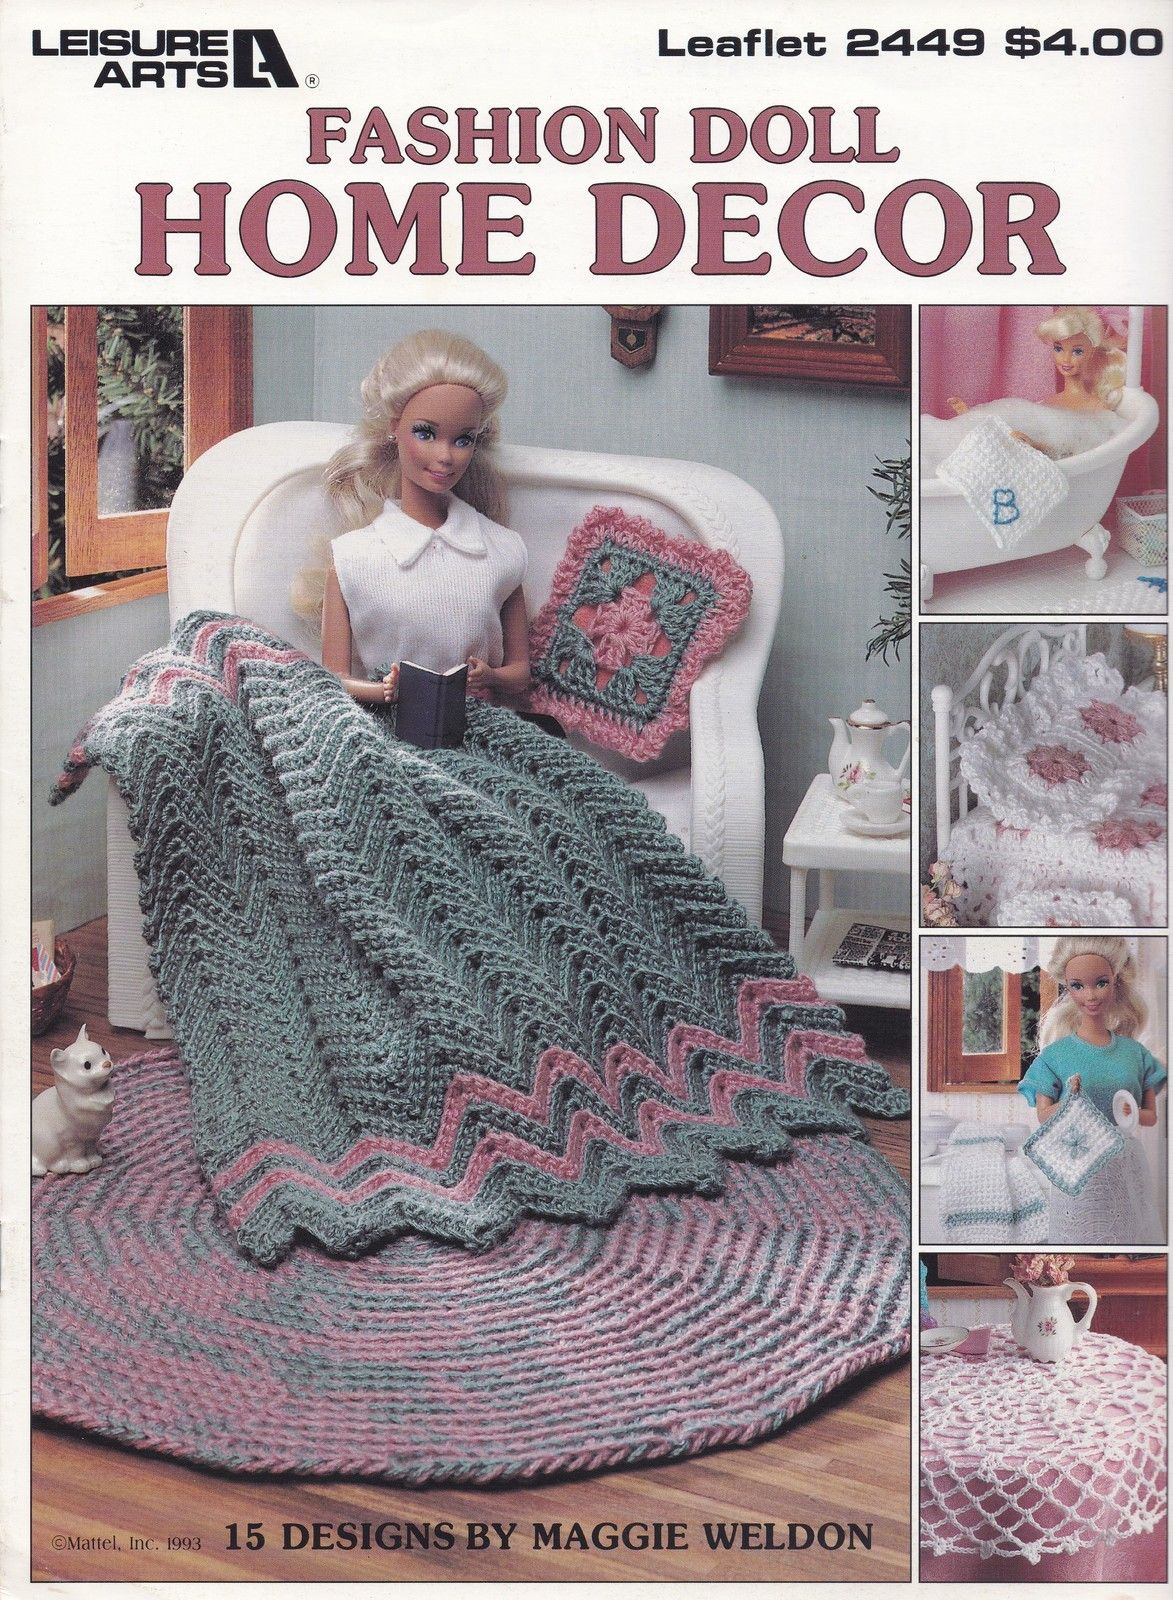 Fashion Doll Home Decor, Leisure Arts Crochet Pattern Booklet 2449 Accessories - Patterns-Contemporary